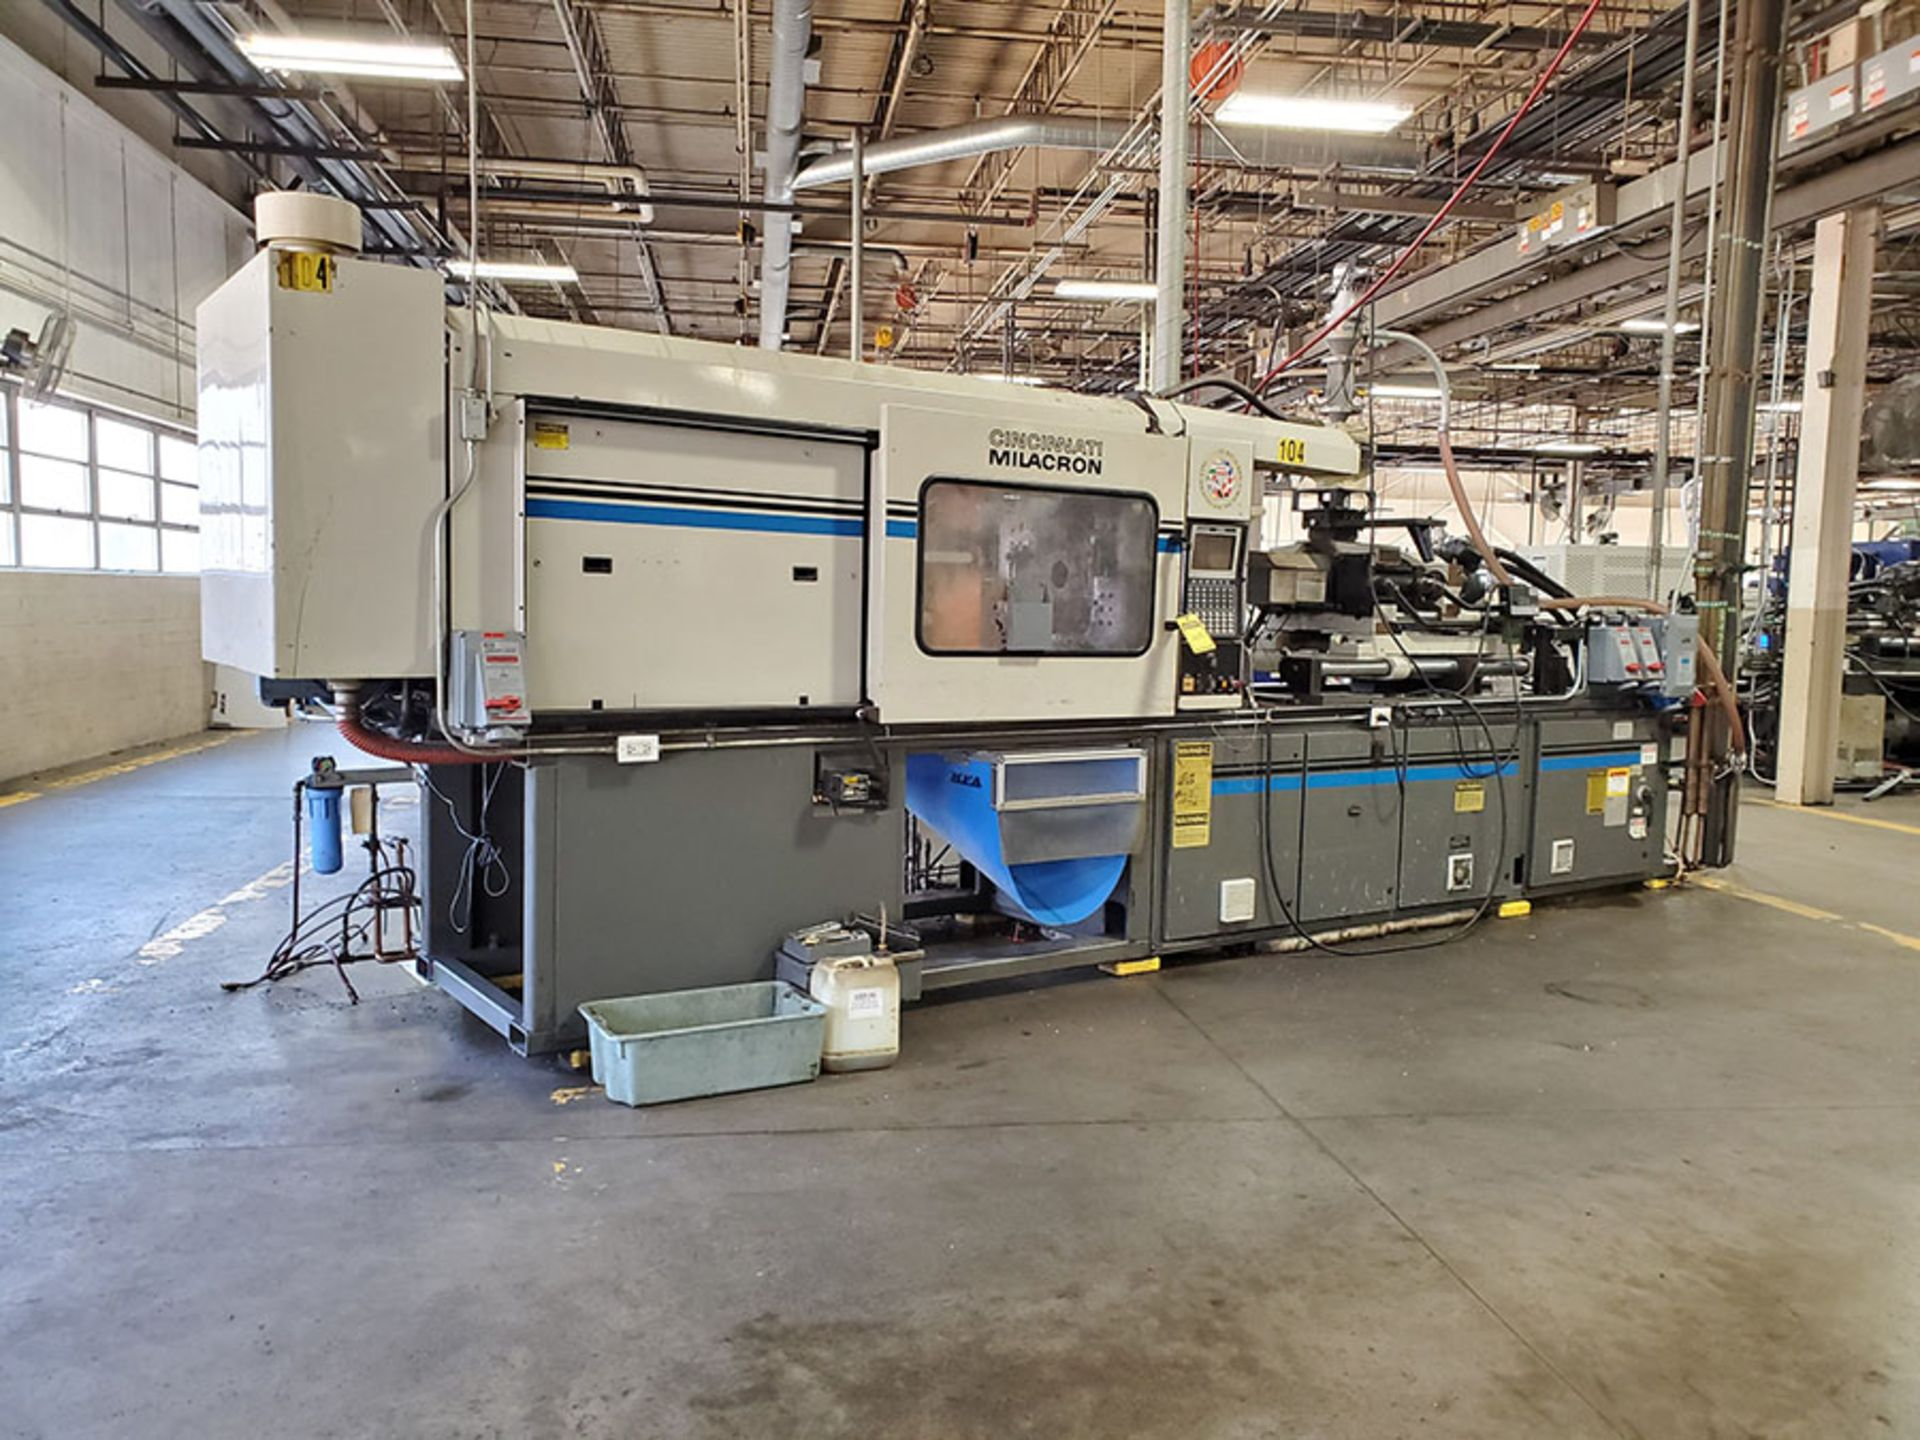 Lot 169 - 1994 CINCINNATI MILACRON 250-TON PLASTIC INJECTION MOLDING MACHINE; MODEL VH-250-13, S/N